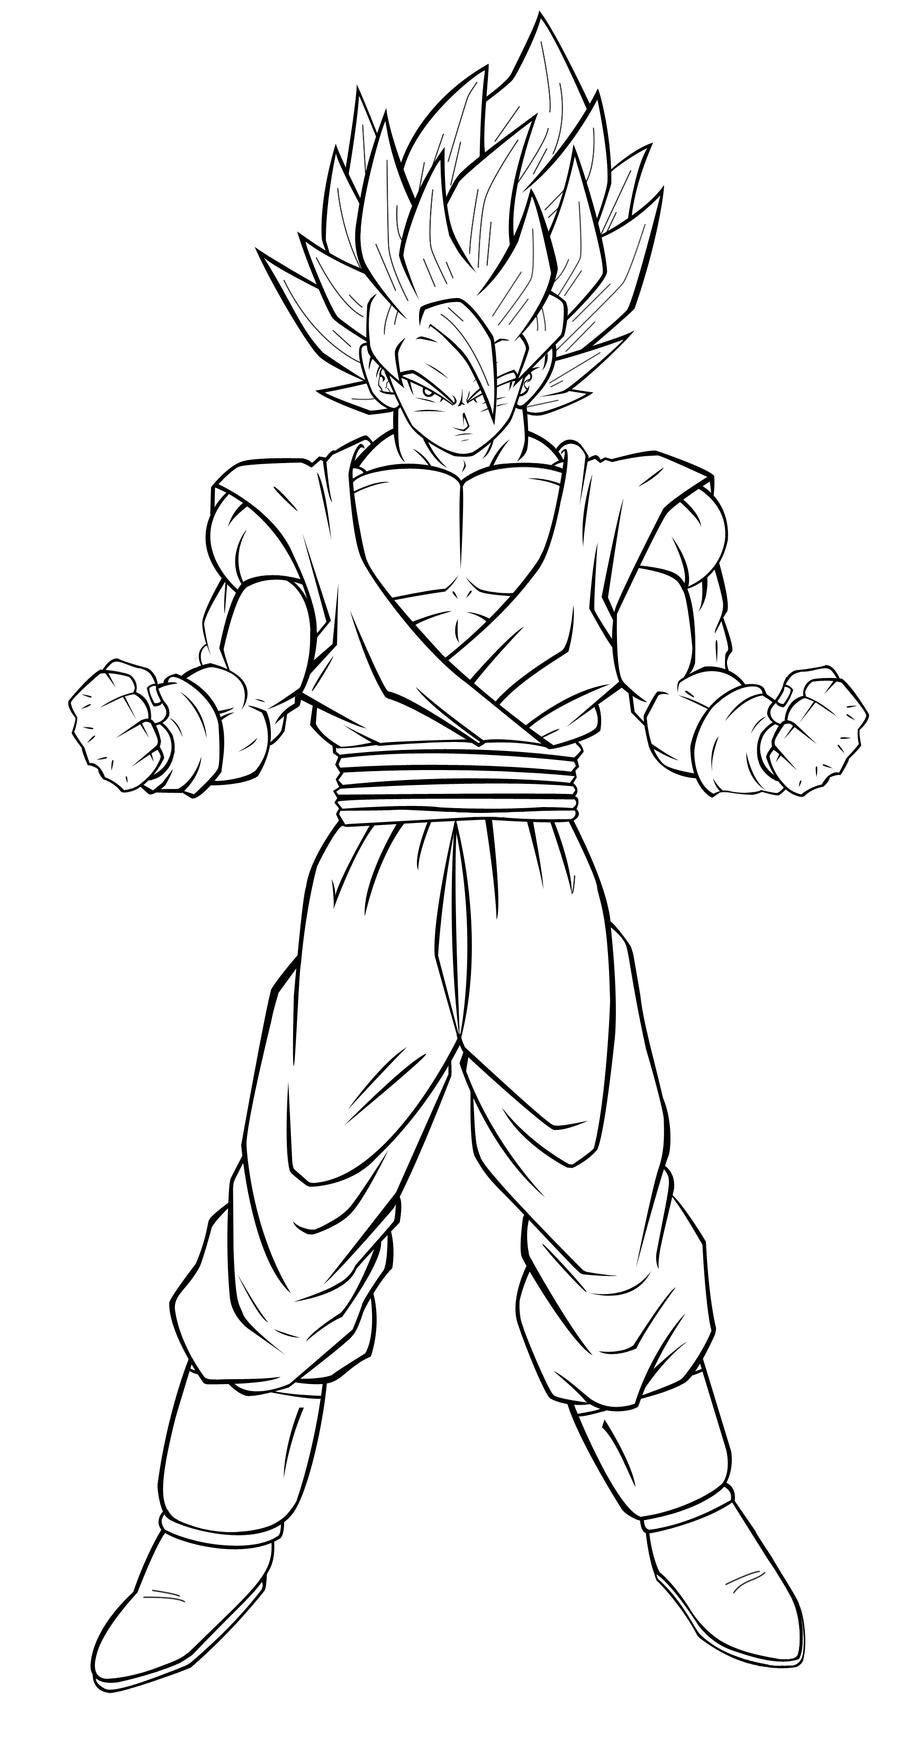 Goku Ssj6 Coloring PagesSsjPrintable Coloring Pages Free Download